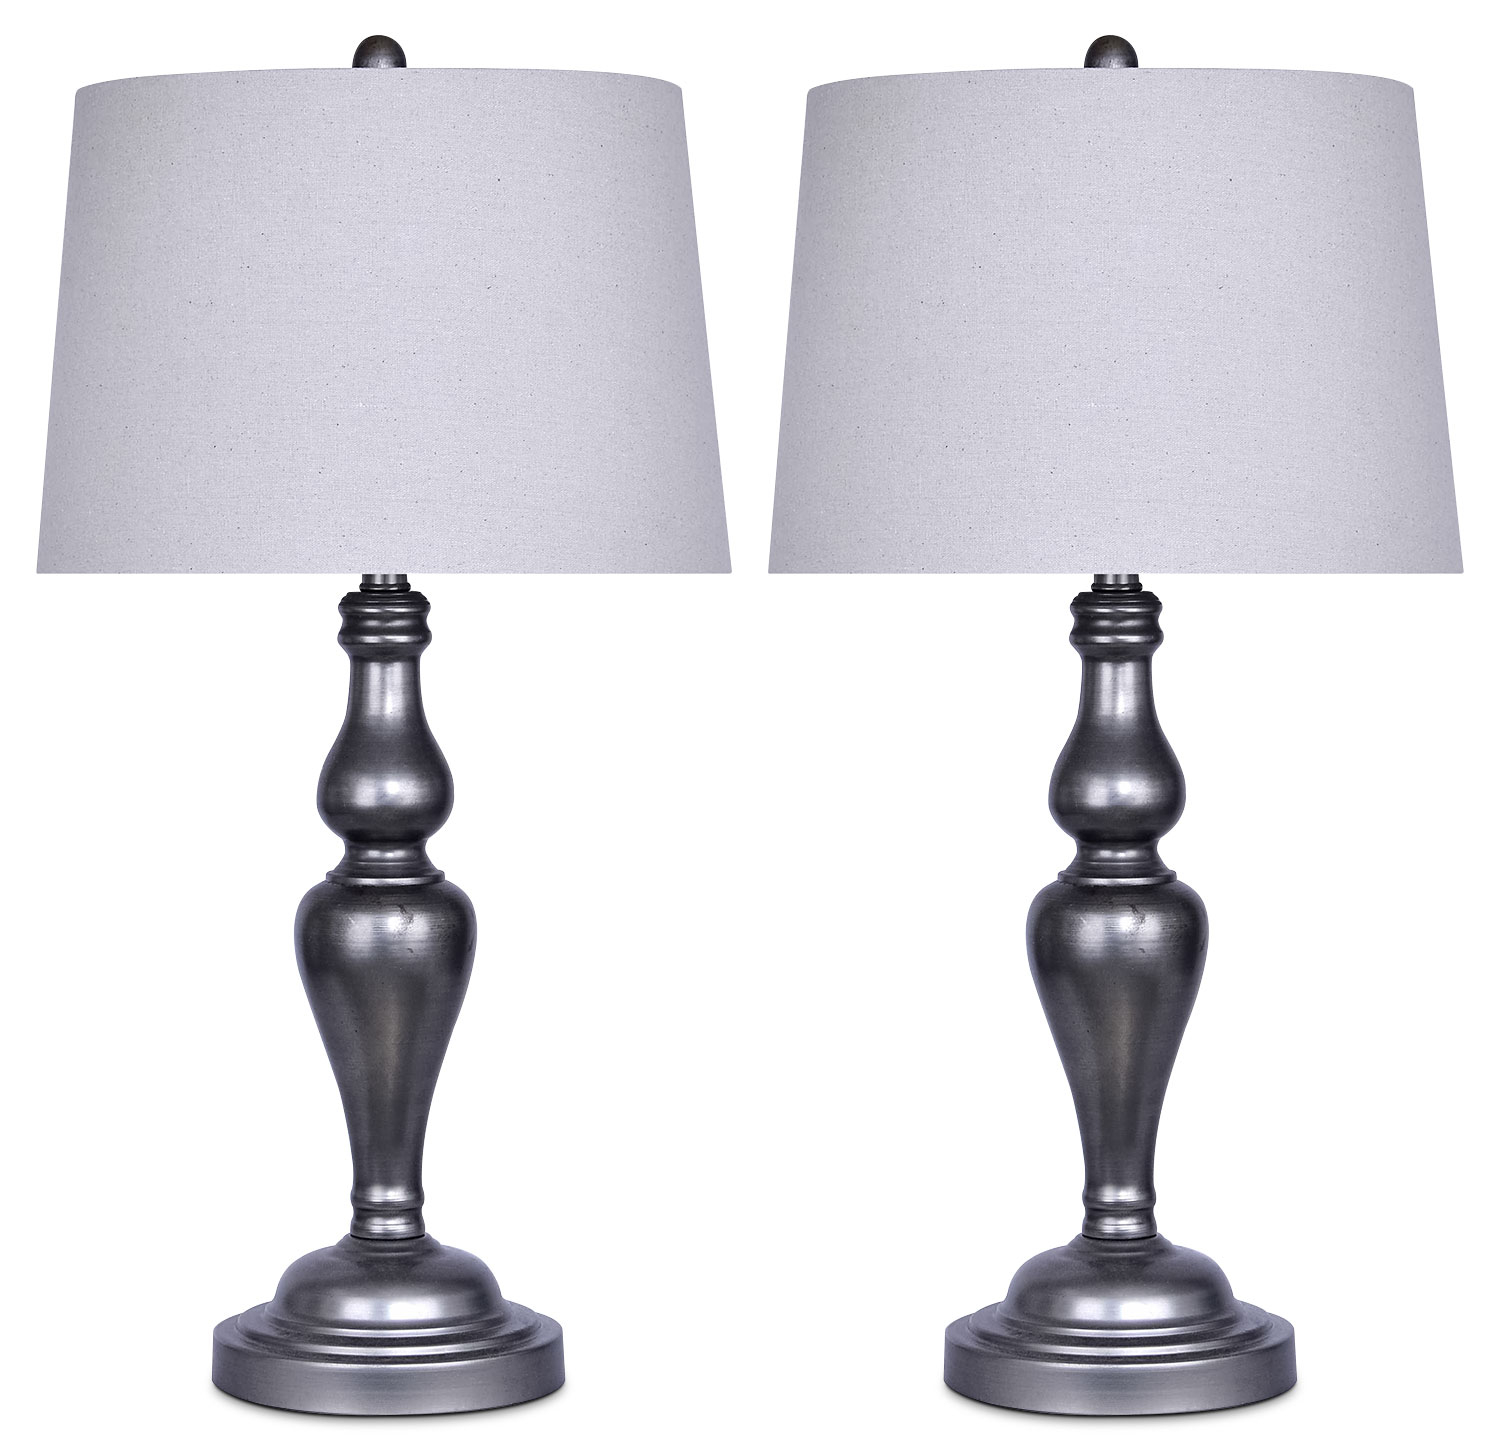 Vintage Metal 2-Piece Table Lamp Set